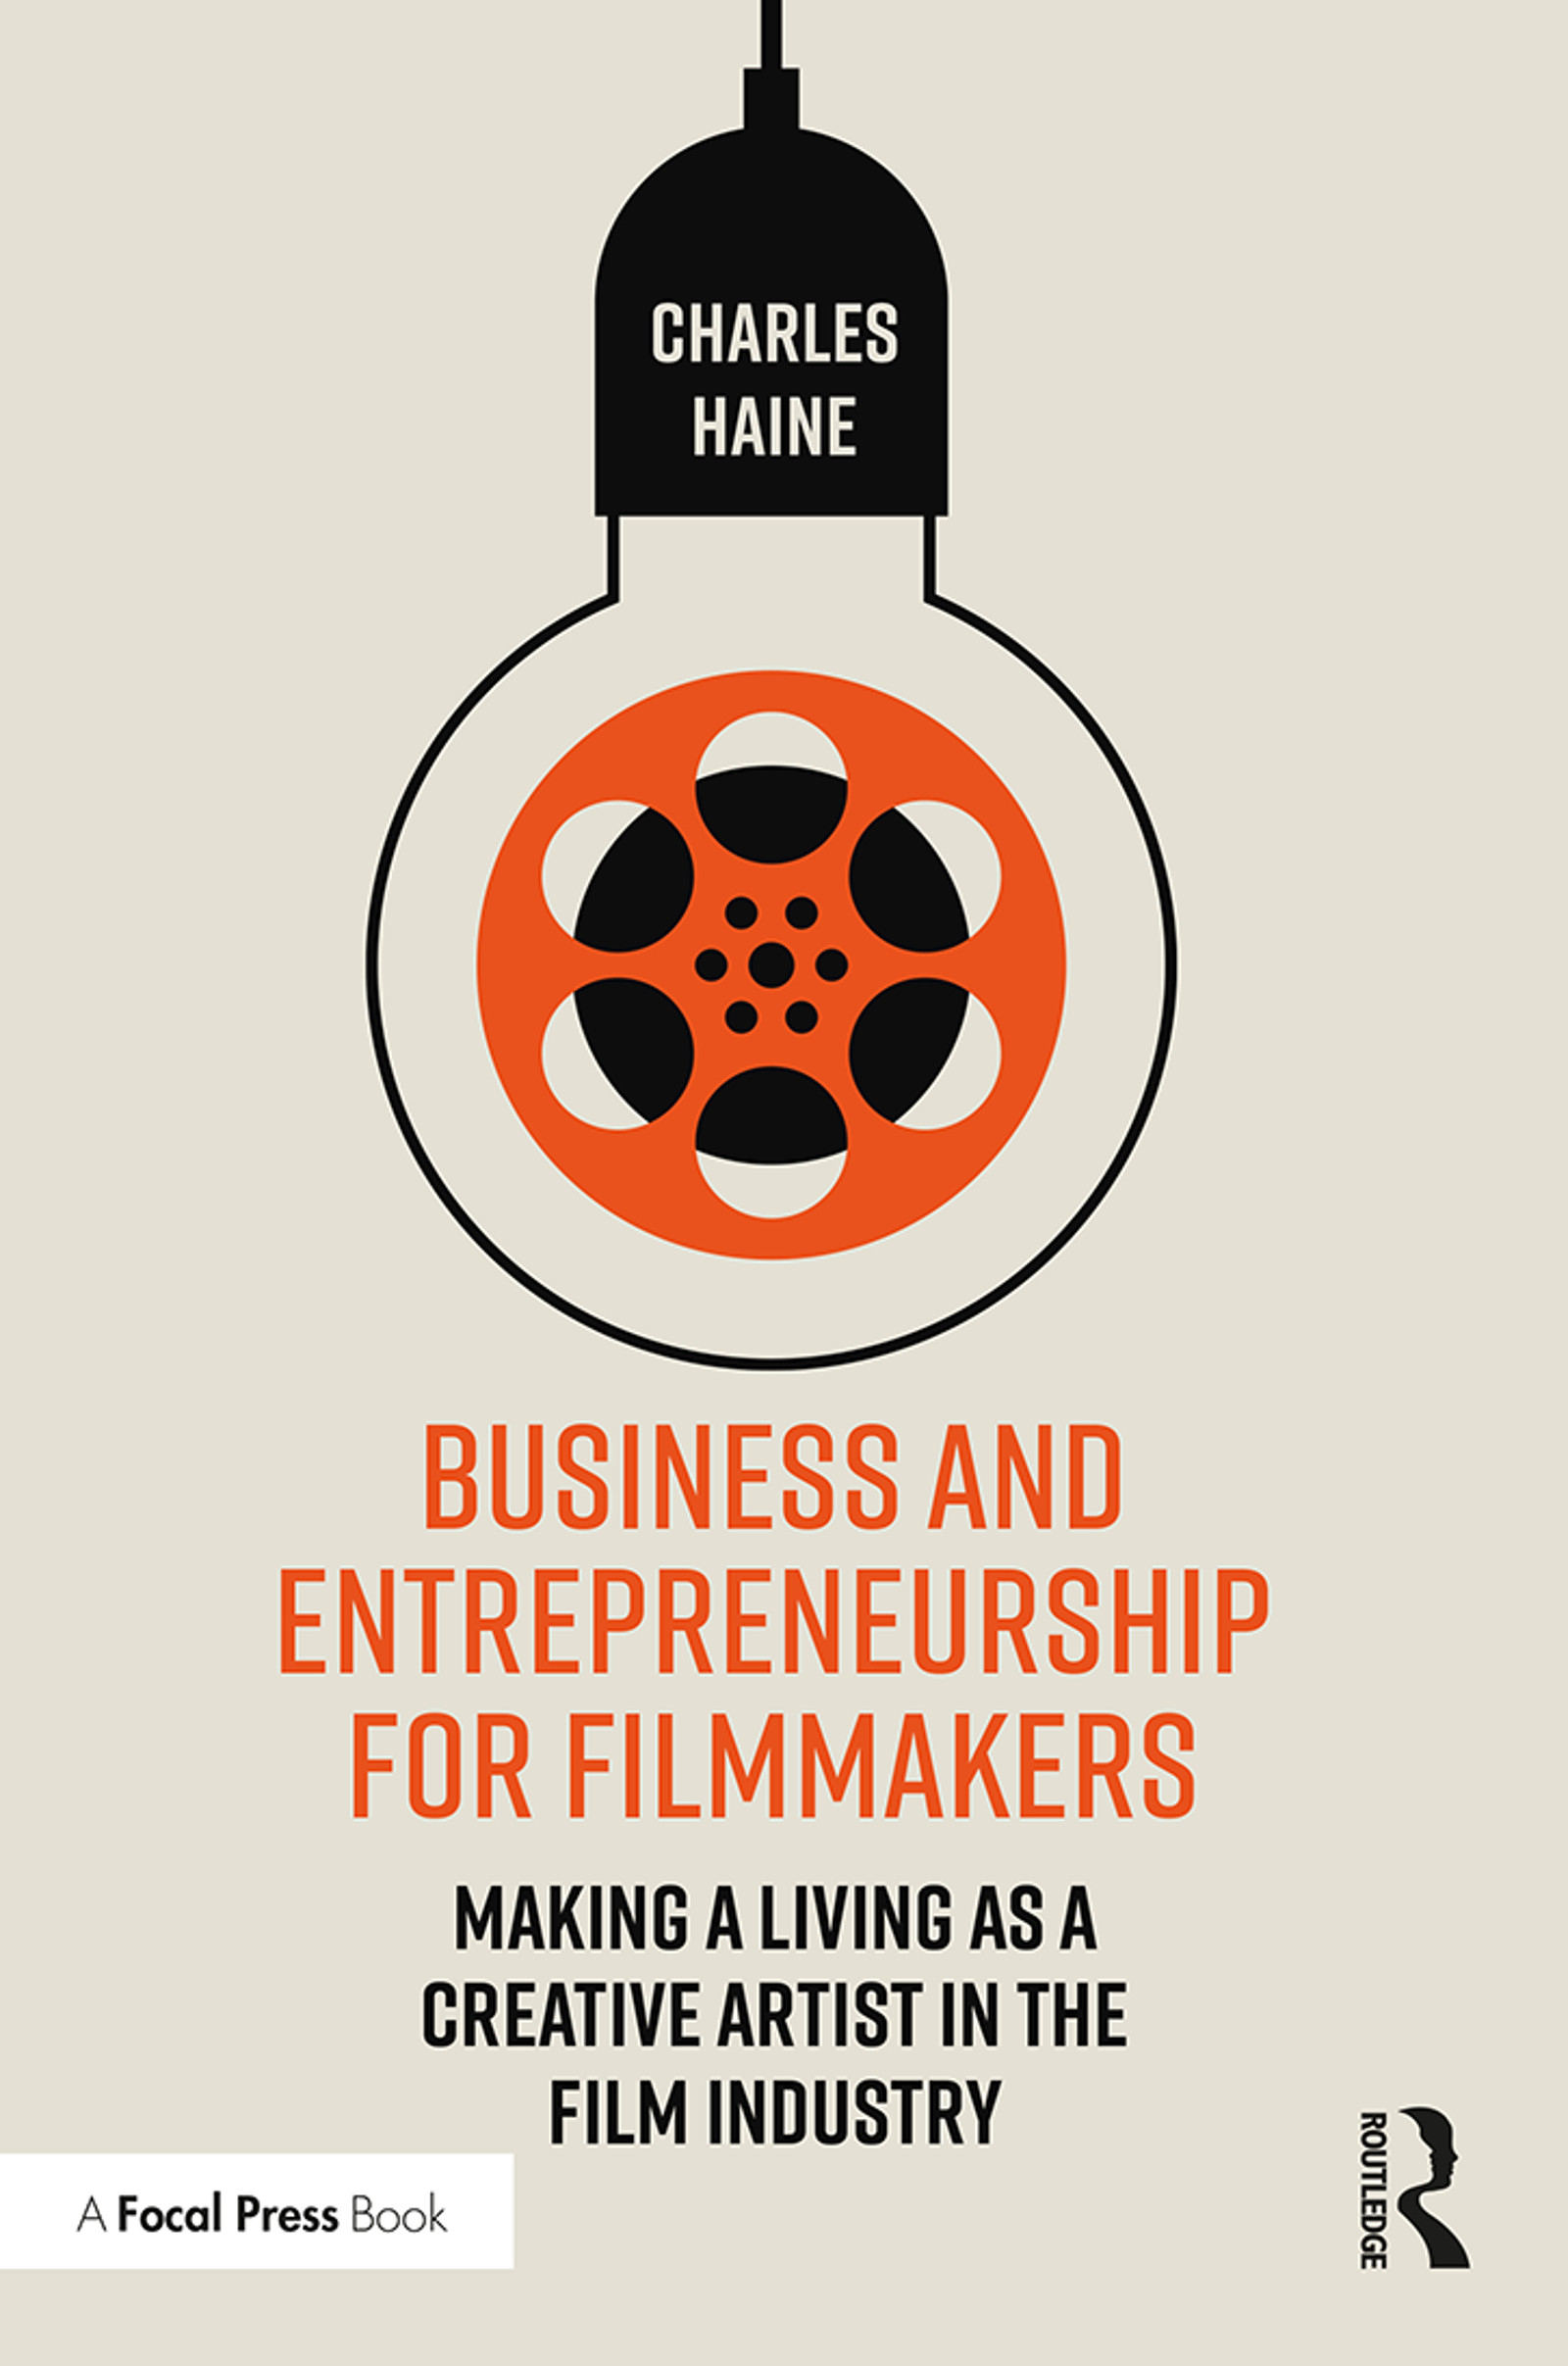 Business and Entrepreneurship for Filmmakers: Making a Living as a Creative Artist in the Film Industry book cover